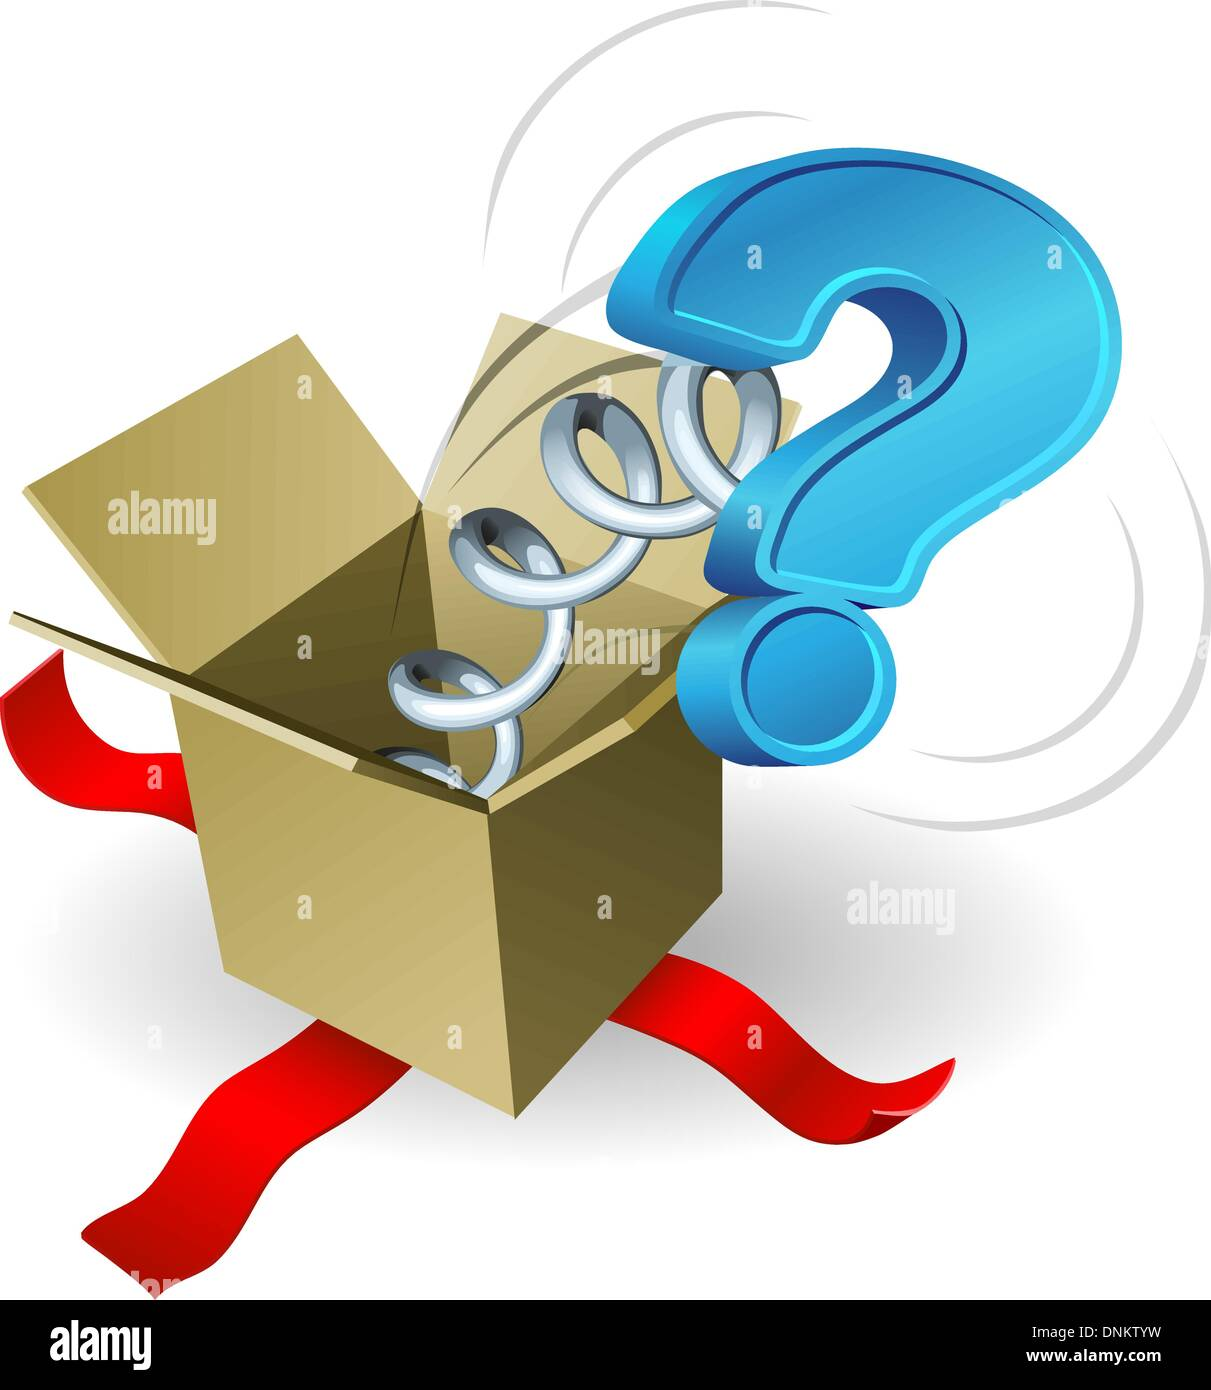 A question mark springing out of a box conceptual illustration. - Stock Vector